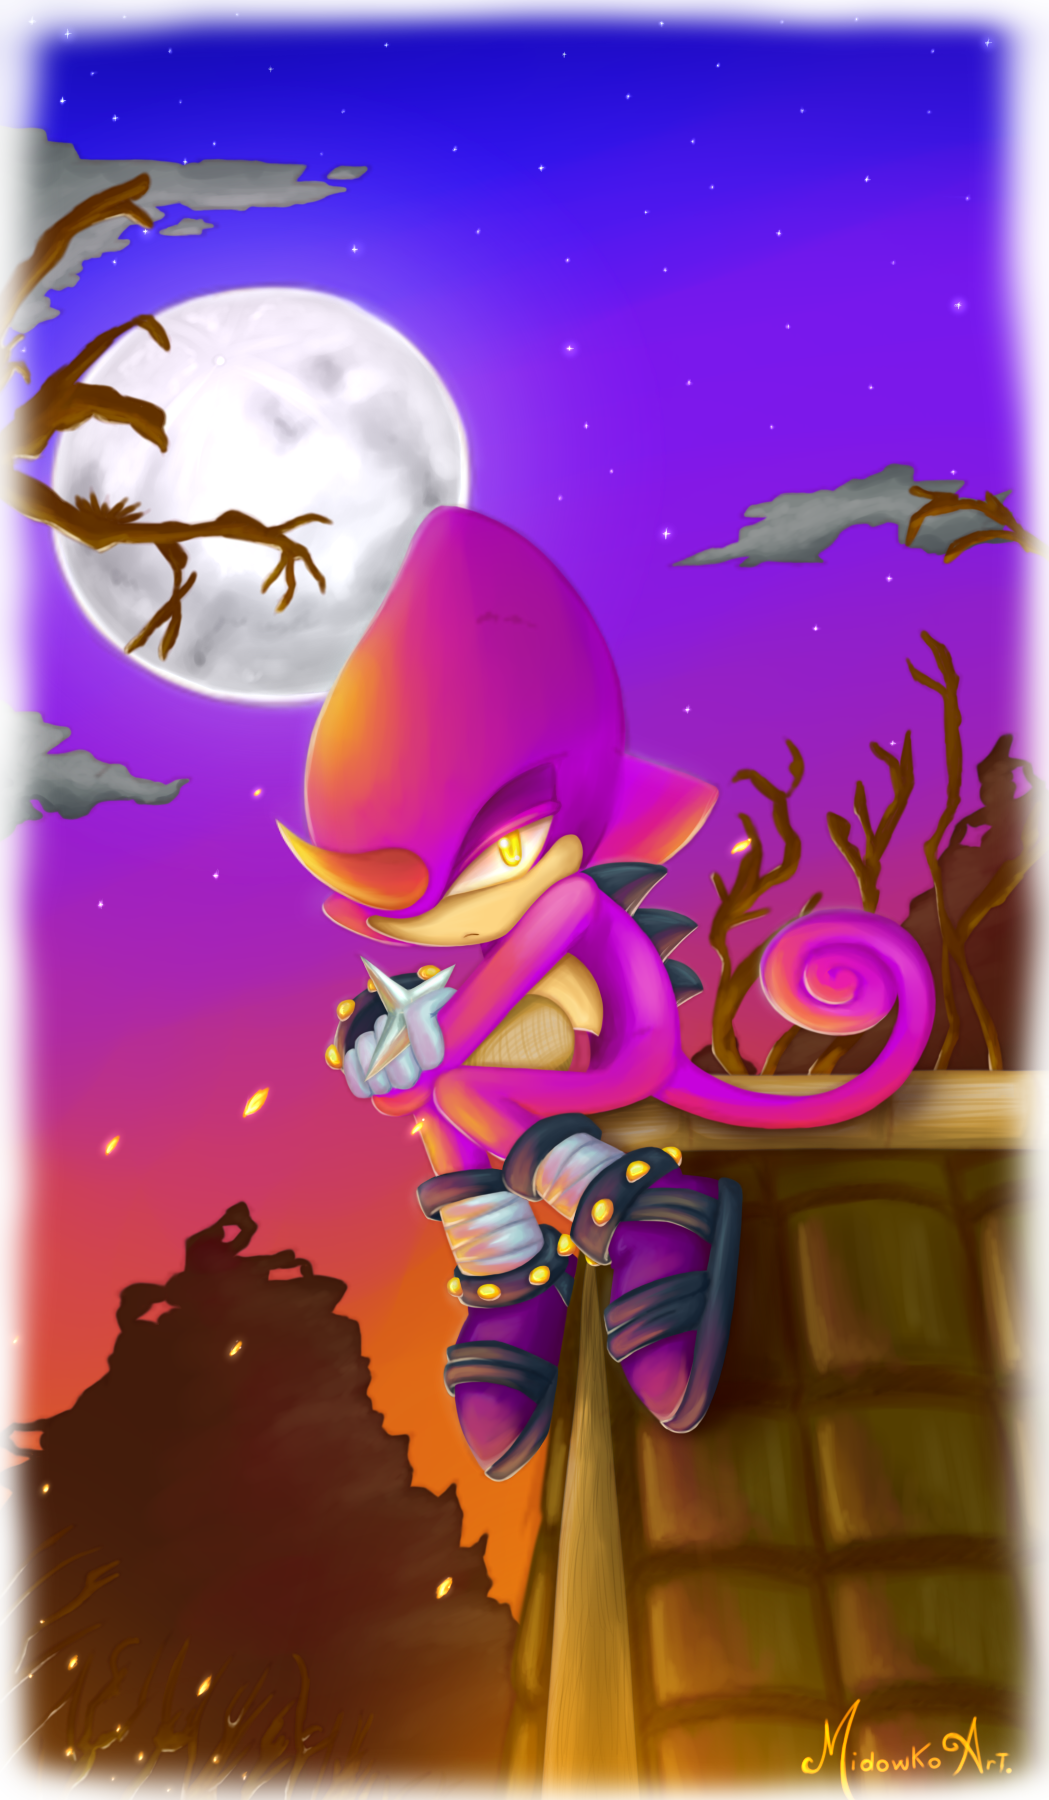 Espio the chameleon by Midowko